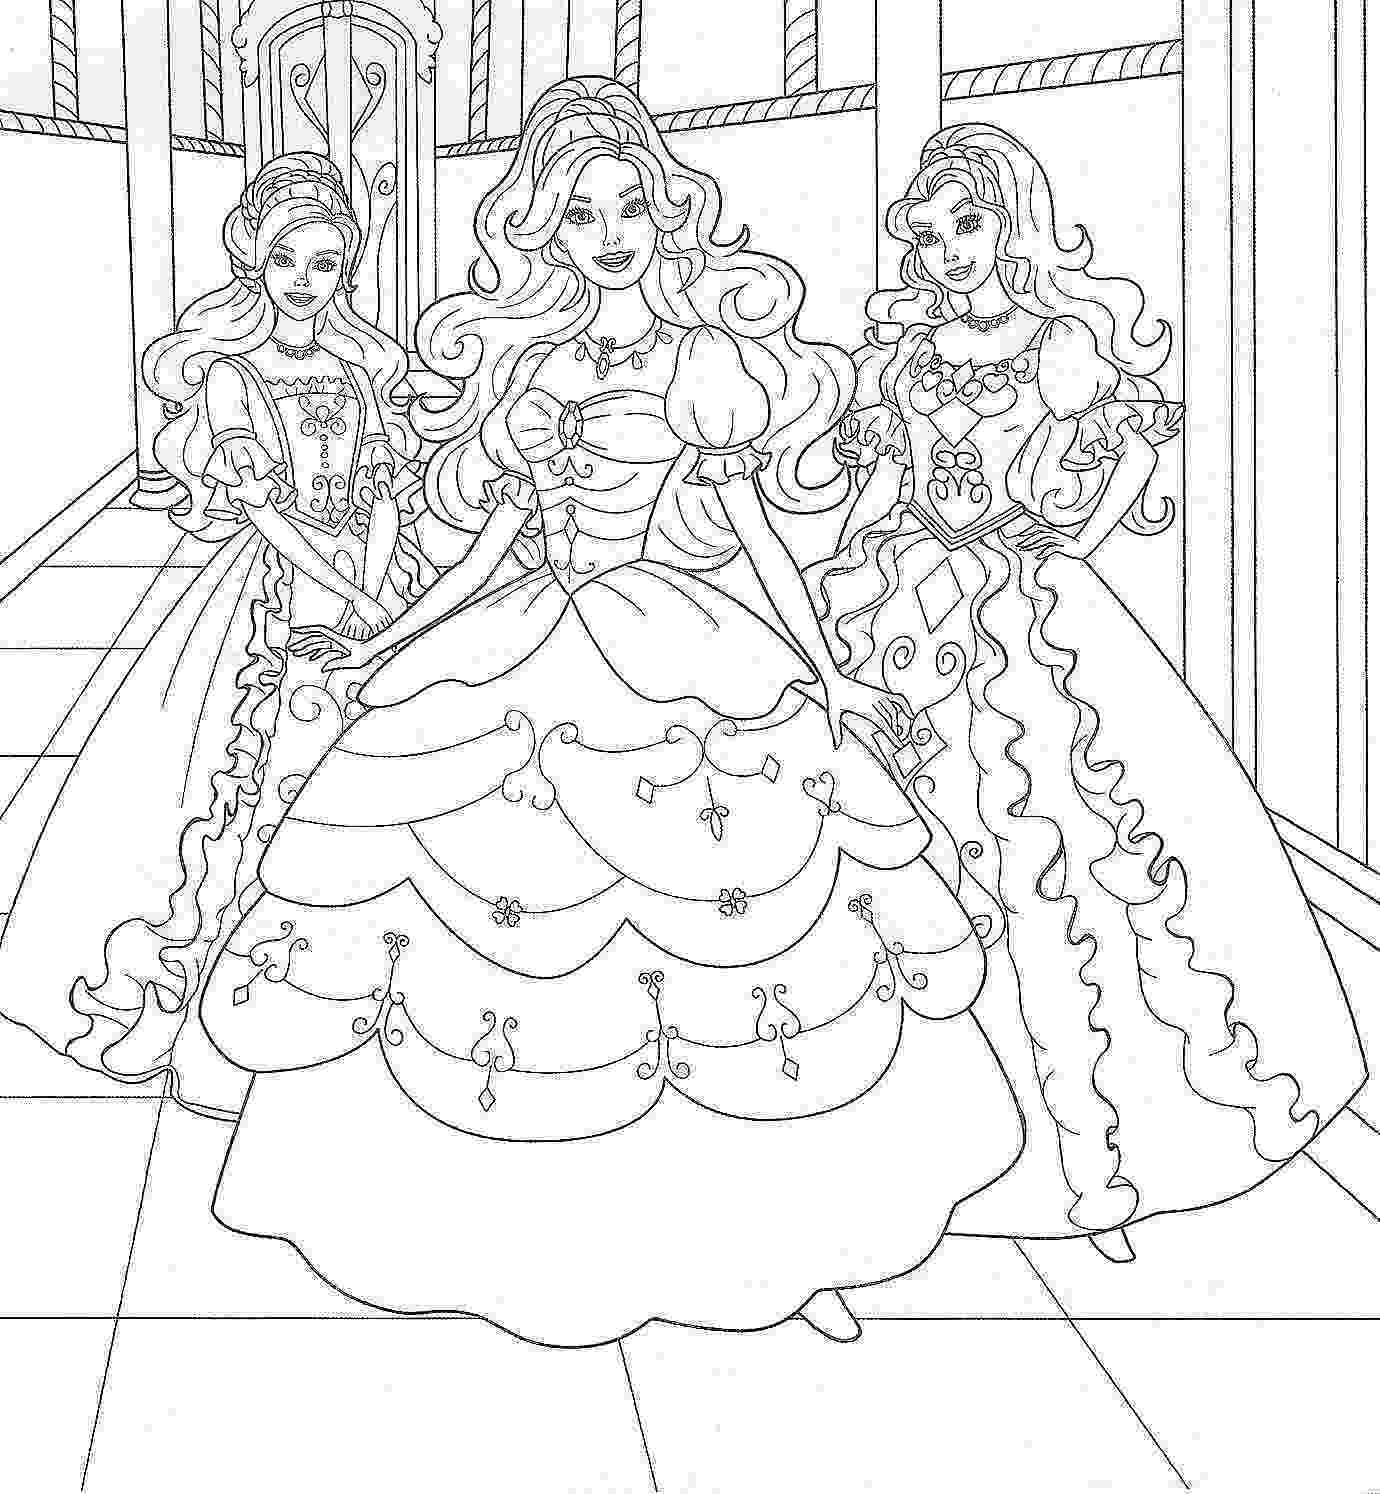 barbie free coloring pages barbie coloring pages coloring barbie free pages